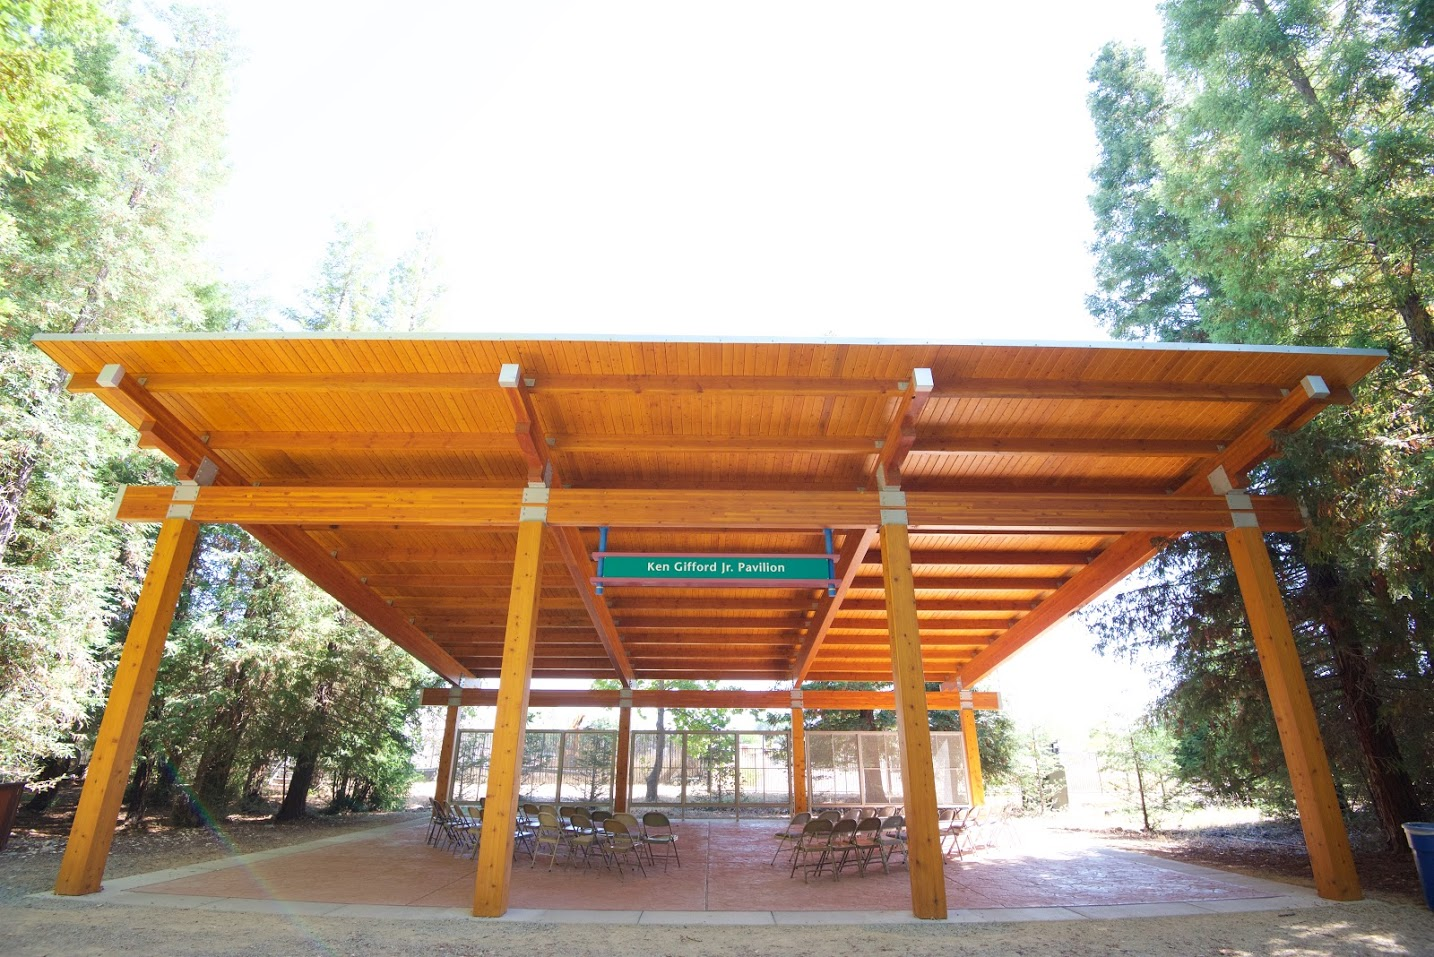 Gifford Memorial Picnic Pavilion - The pavilion includes a 1,575 sq. ft. covered structure capable of seating 120 people and can accommodate large school groups and other programing and facility rentals.